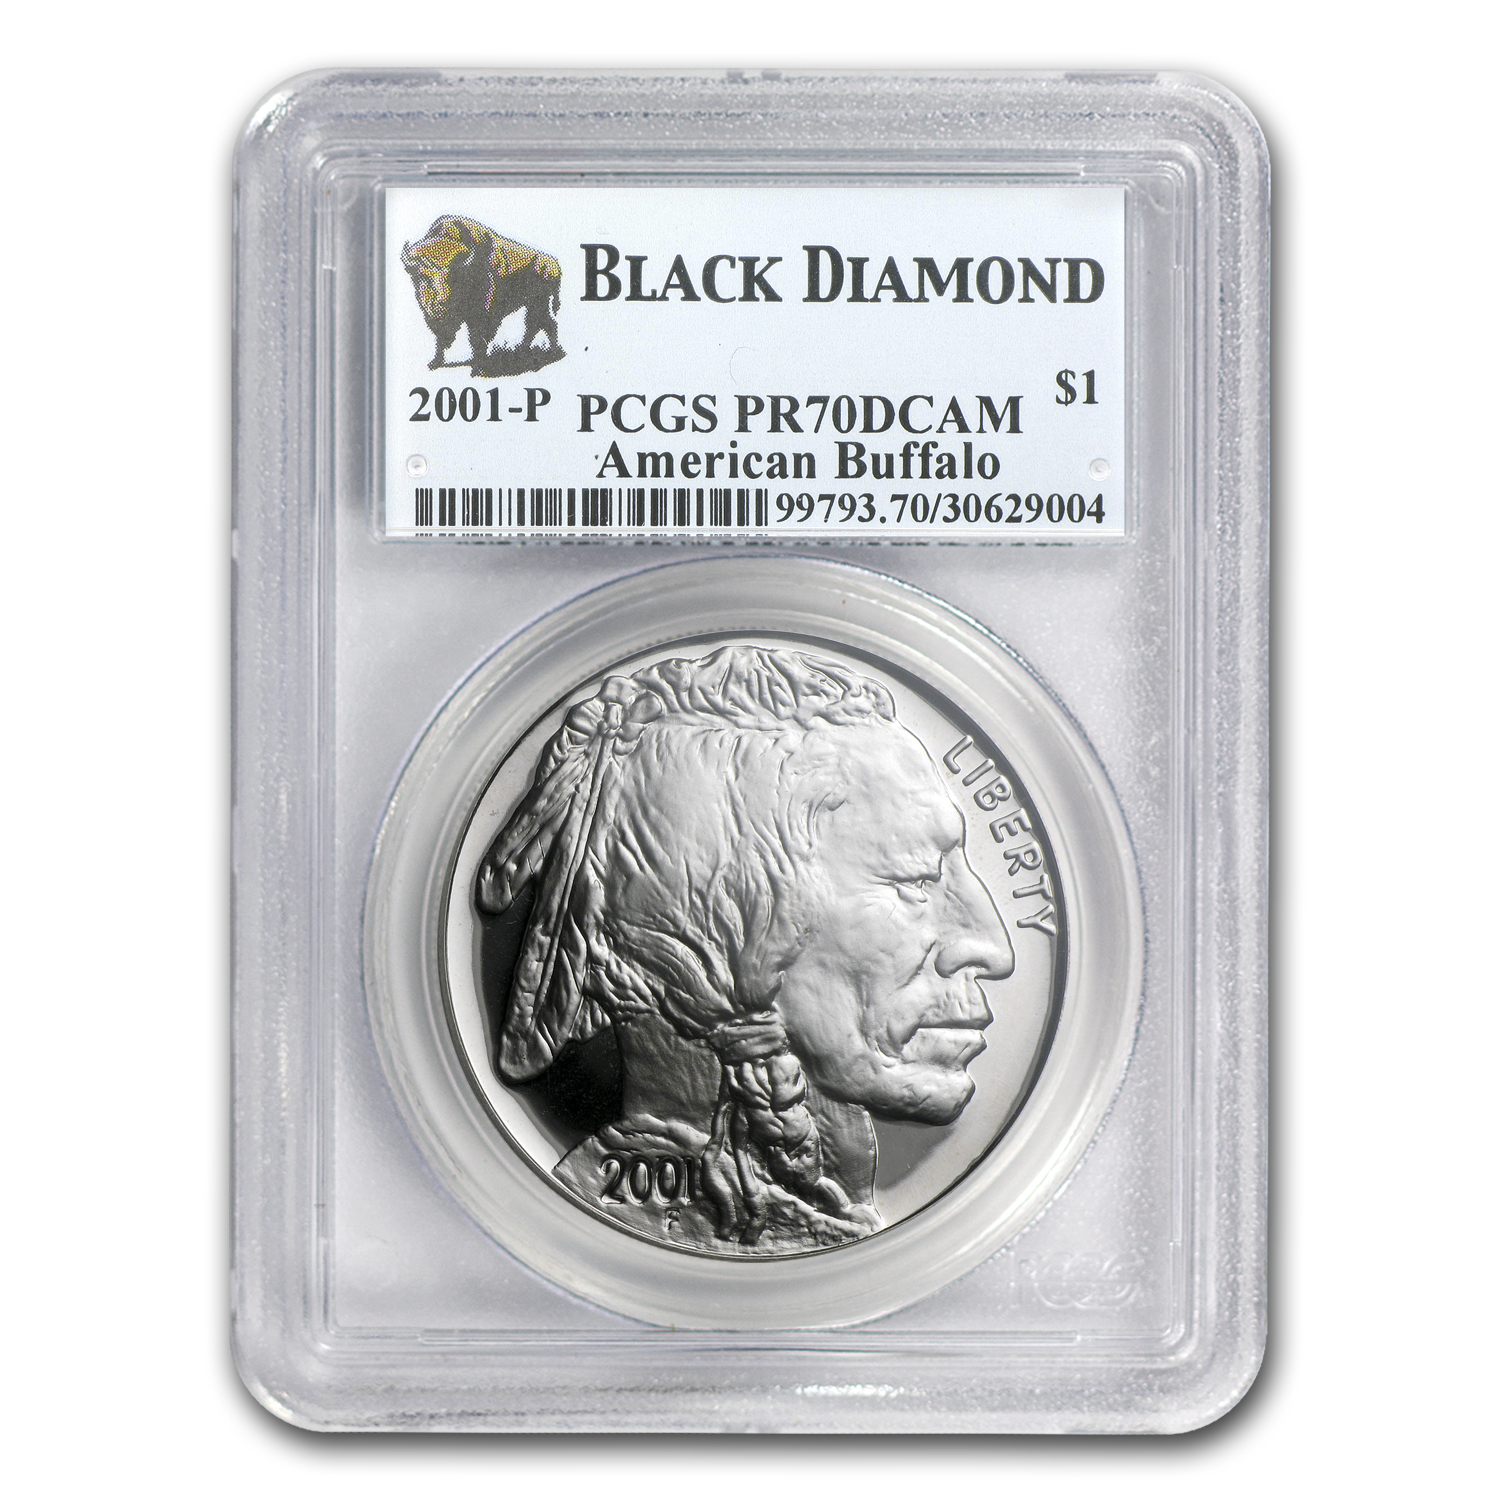 2001-P Buffalo Black Diamond $1 Silver Commemorative PR-70 PCGS